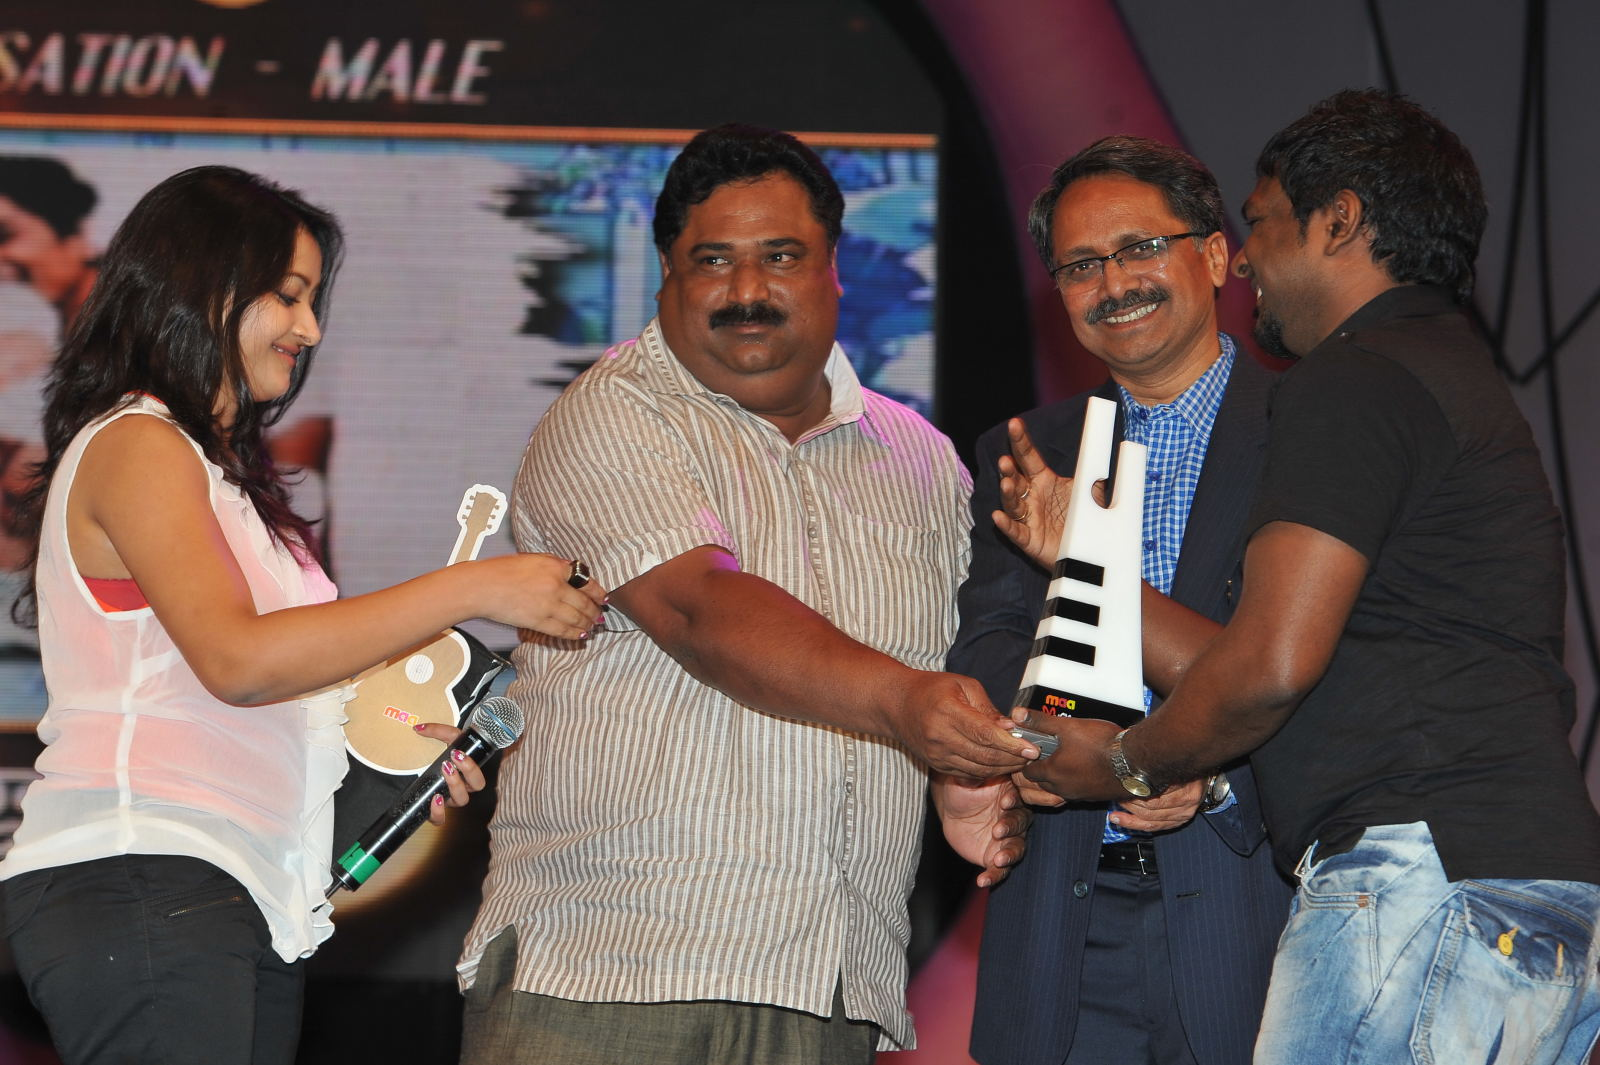 Maa Music Awards 2012 Photo Gallery-HQ-Photo-5